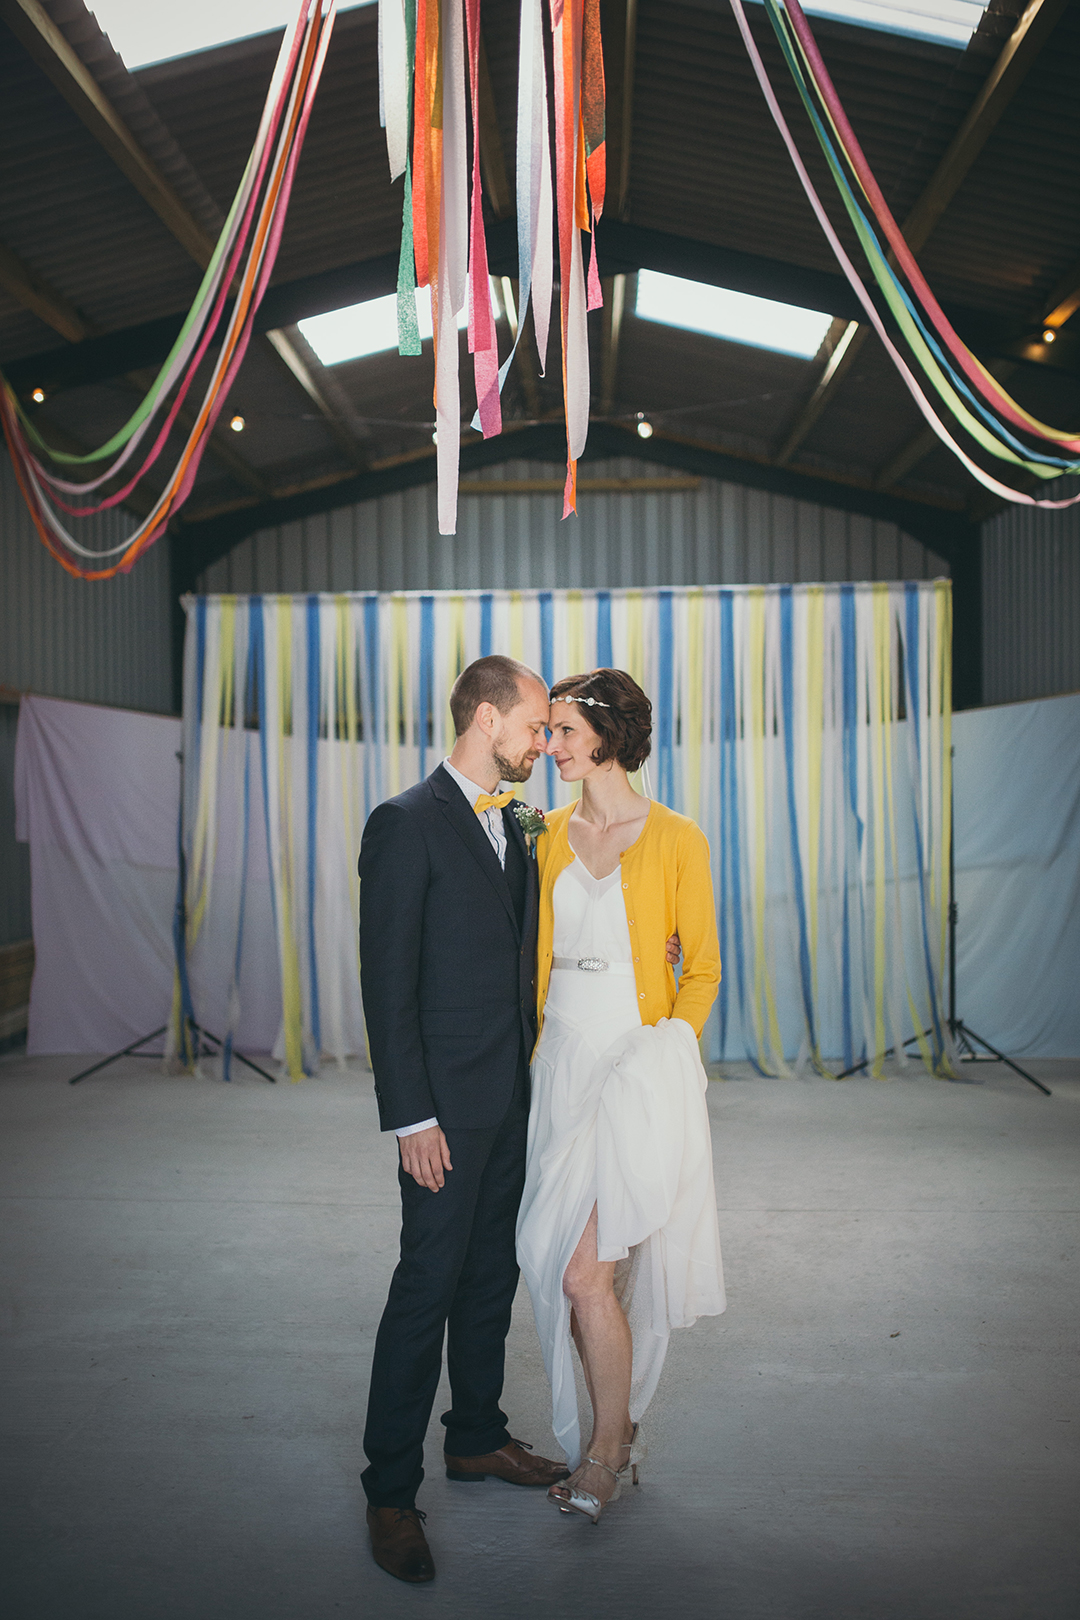 bride and groom with streamers at a festival style wedding